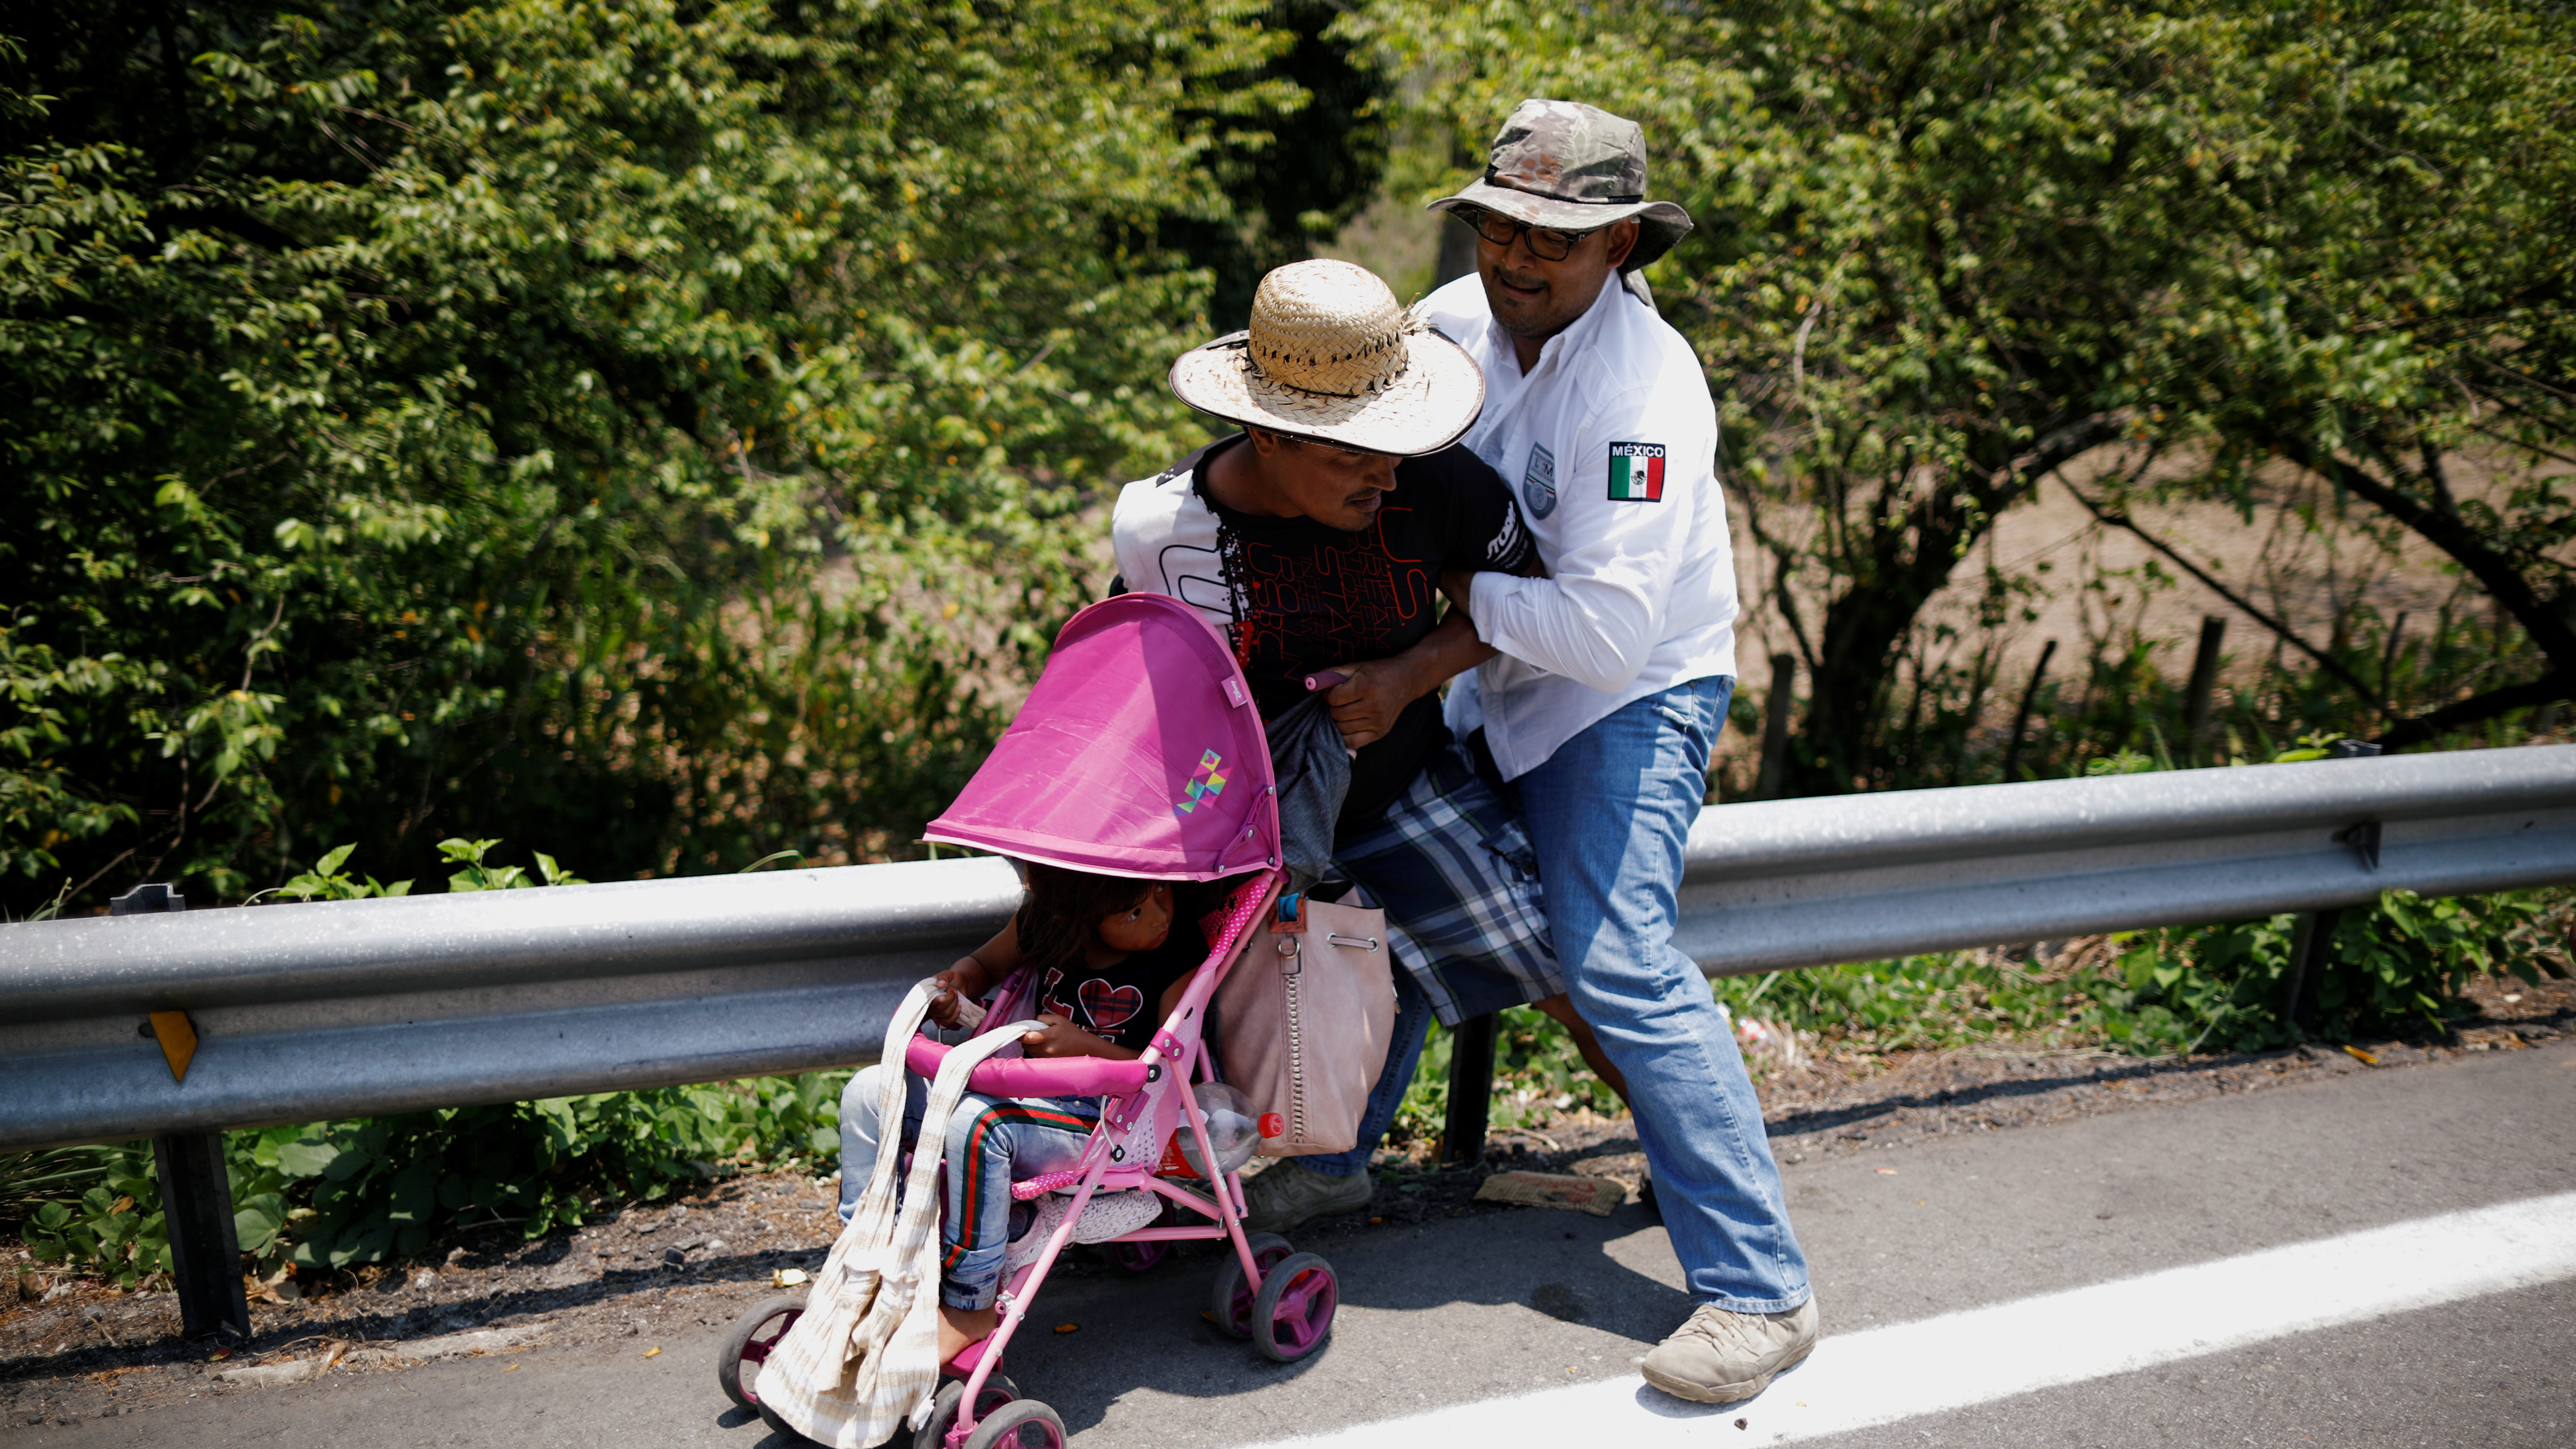 A Central American migrant is detained by an Immigration officer during a raid on their journey towards the United States, in Pijijiapan, Mexico April 22, 2019.